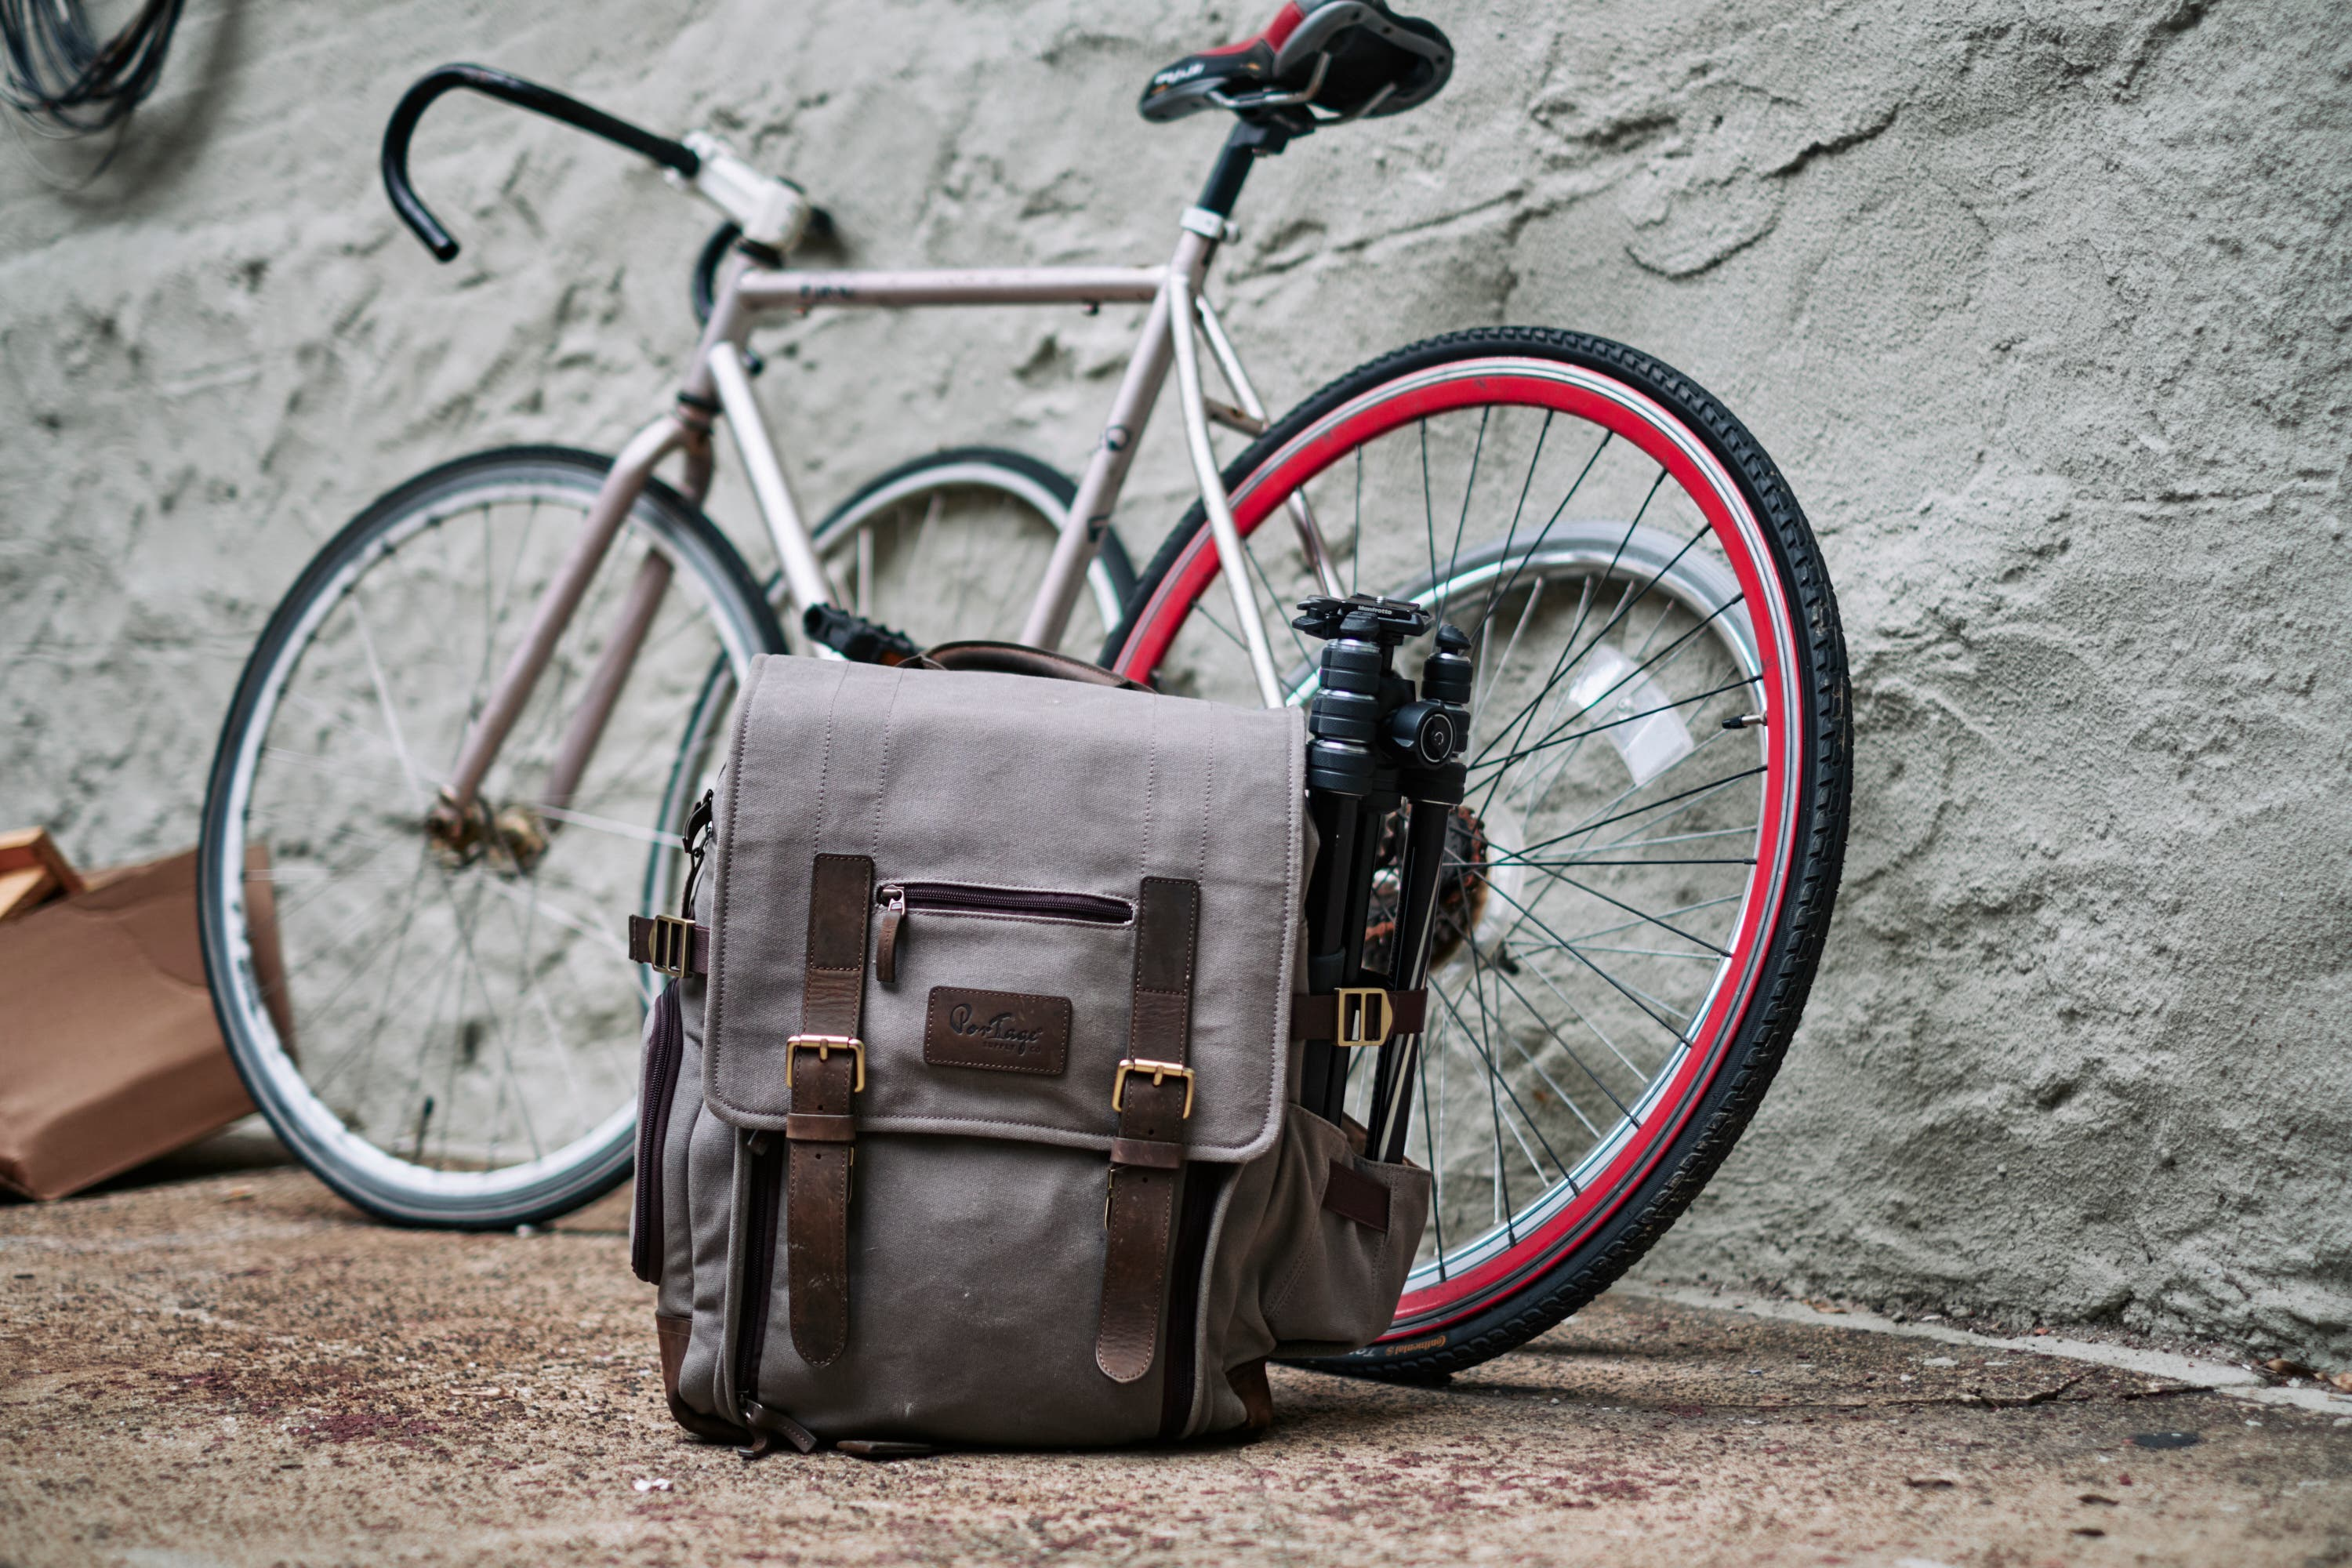 Camera Bag Review: Portage Supply Kenora Backpack (4th Generation)